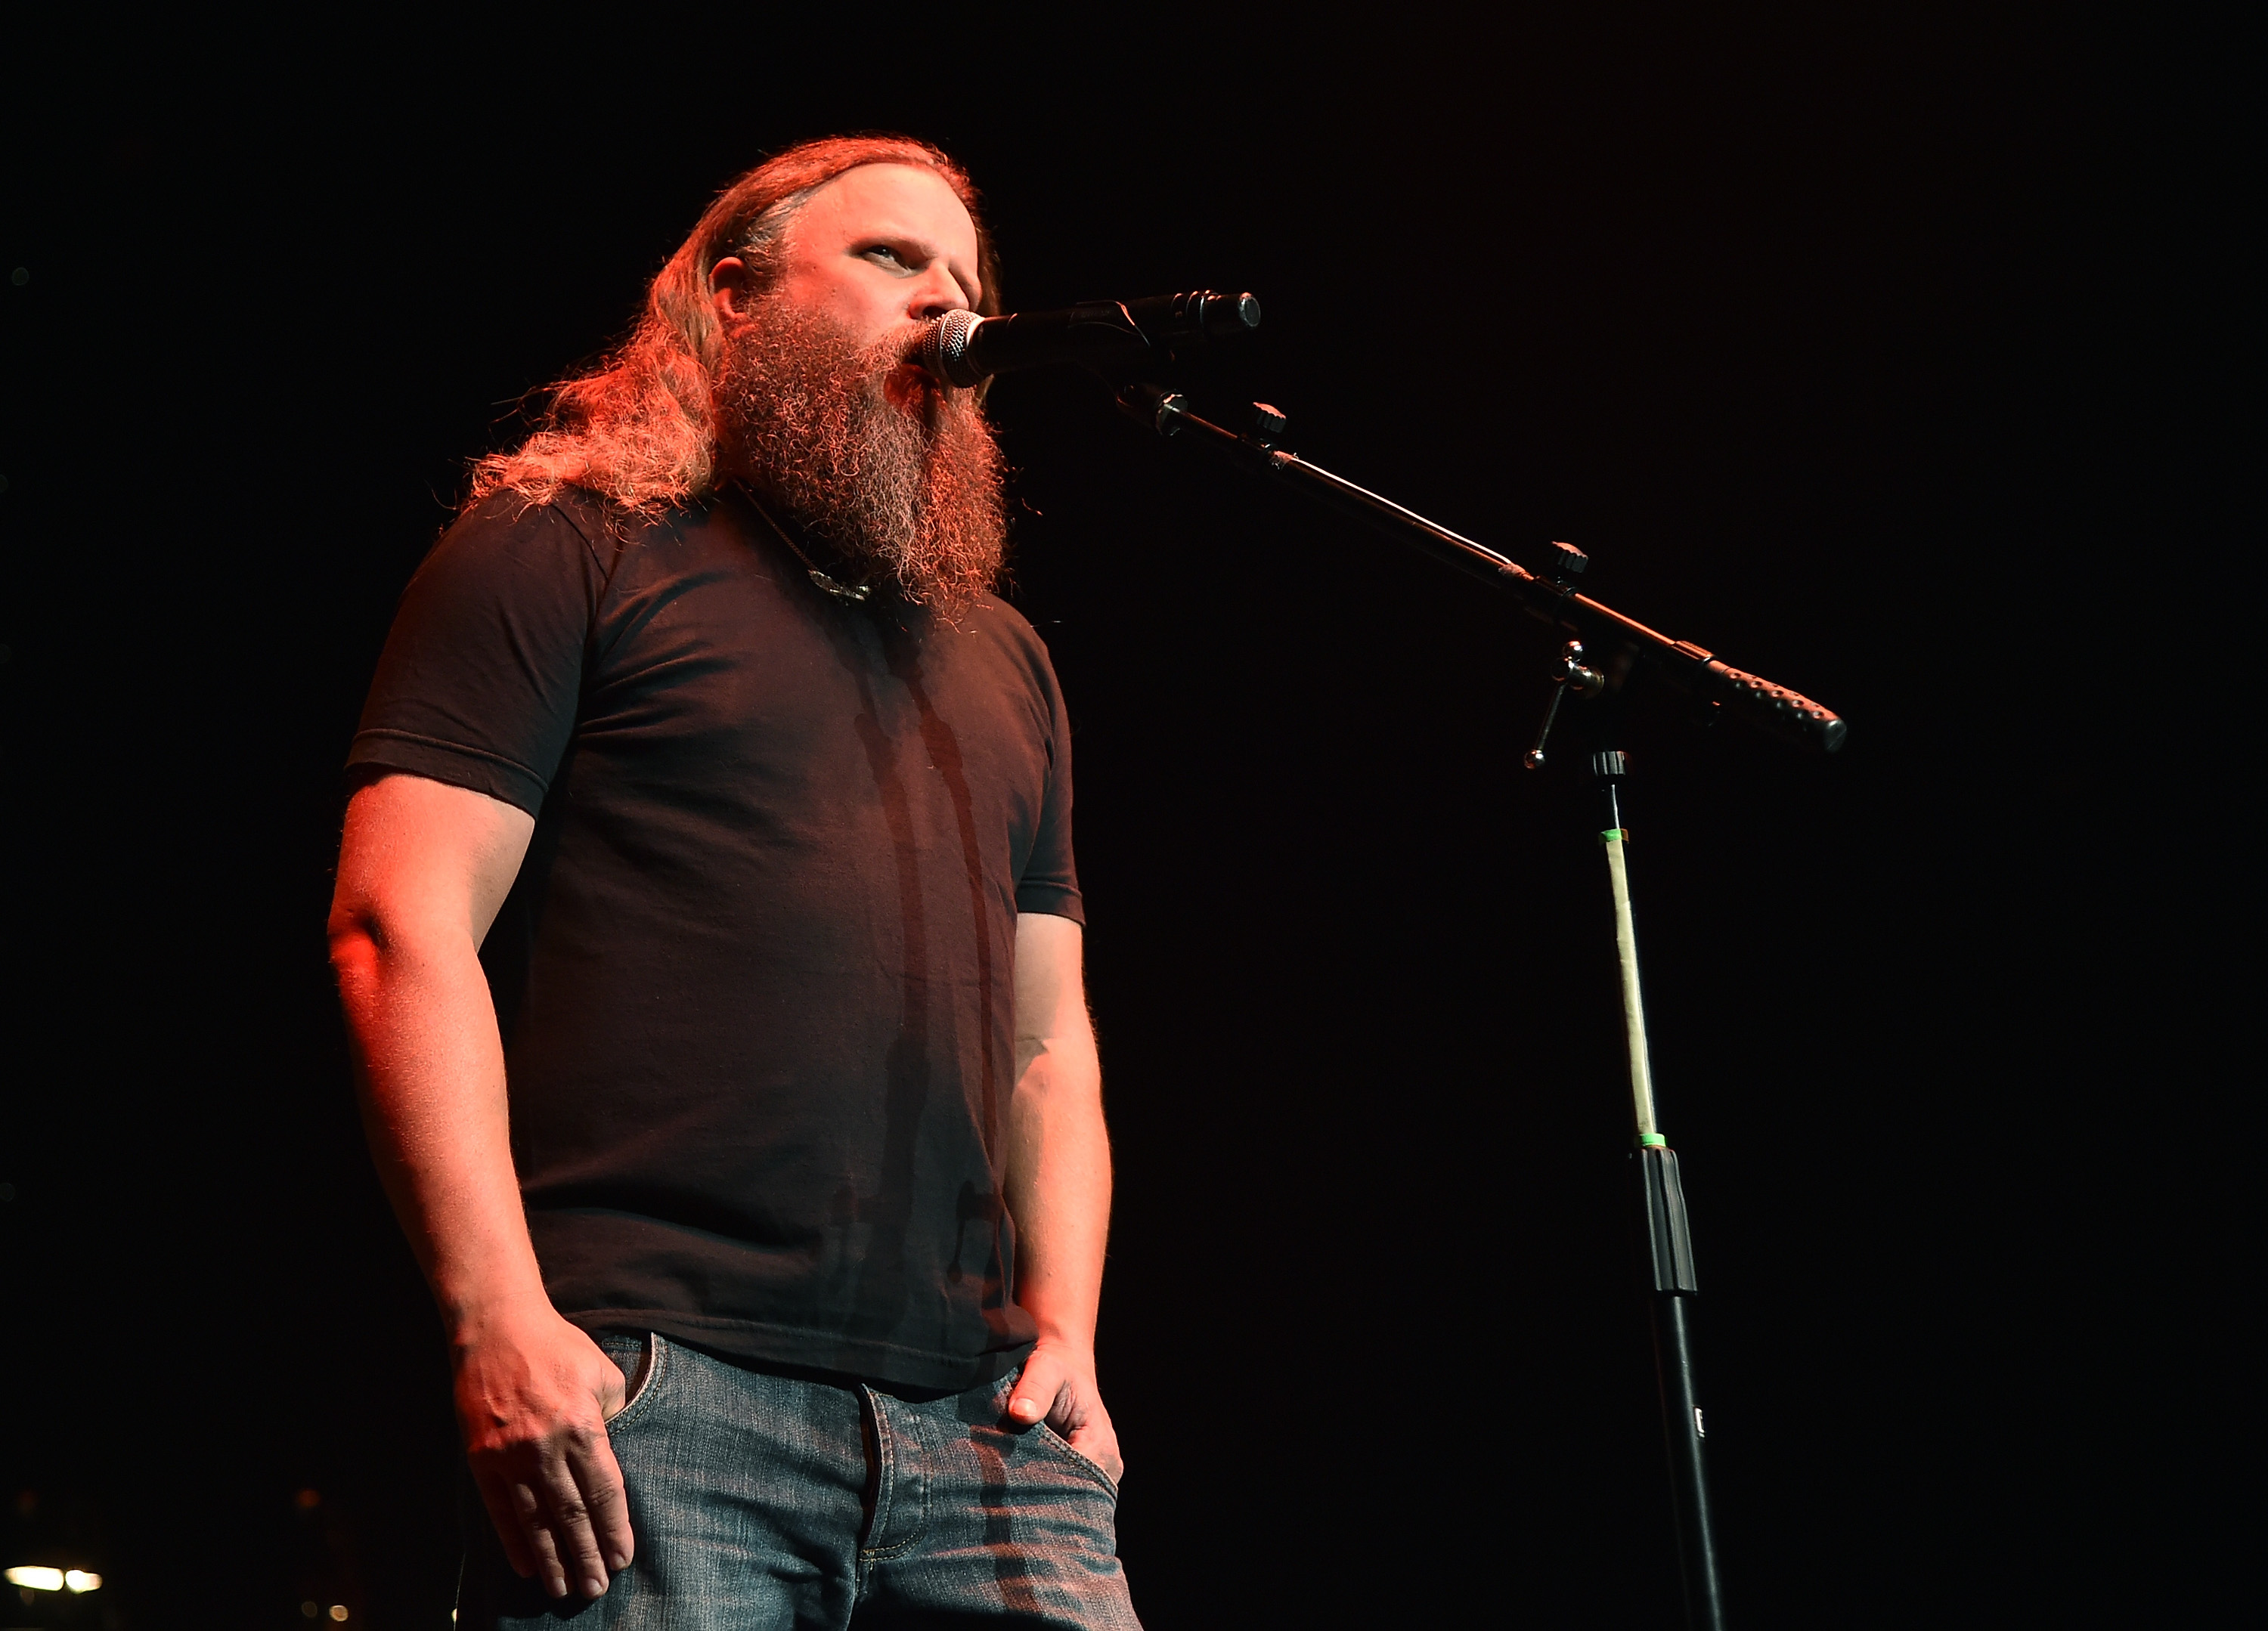 Jamey johnson releases new song for free rolling stone jamey johnson performs at a lynyrd skynyrd tribute in atlanta in november 2014 the singer songwriter has just released the new song alabama pines as a solutioingenieria Image collections